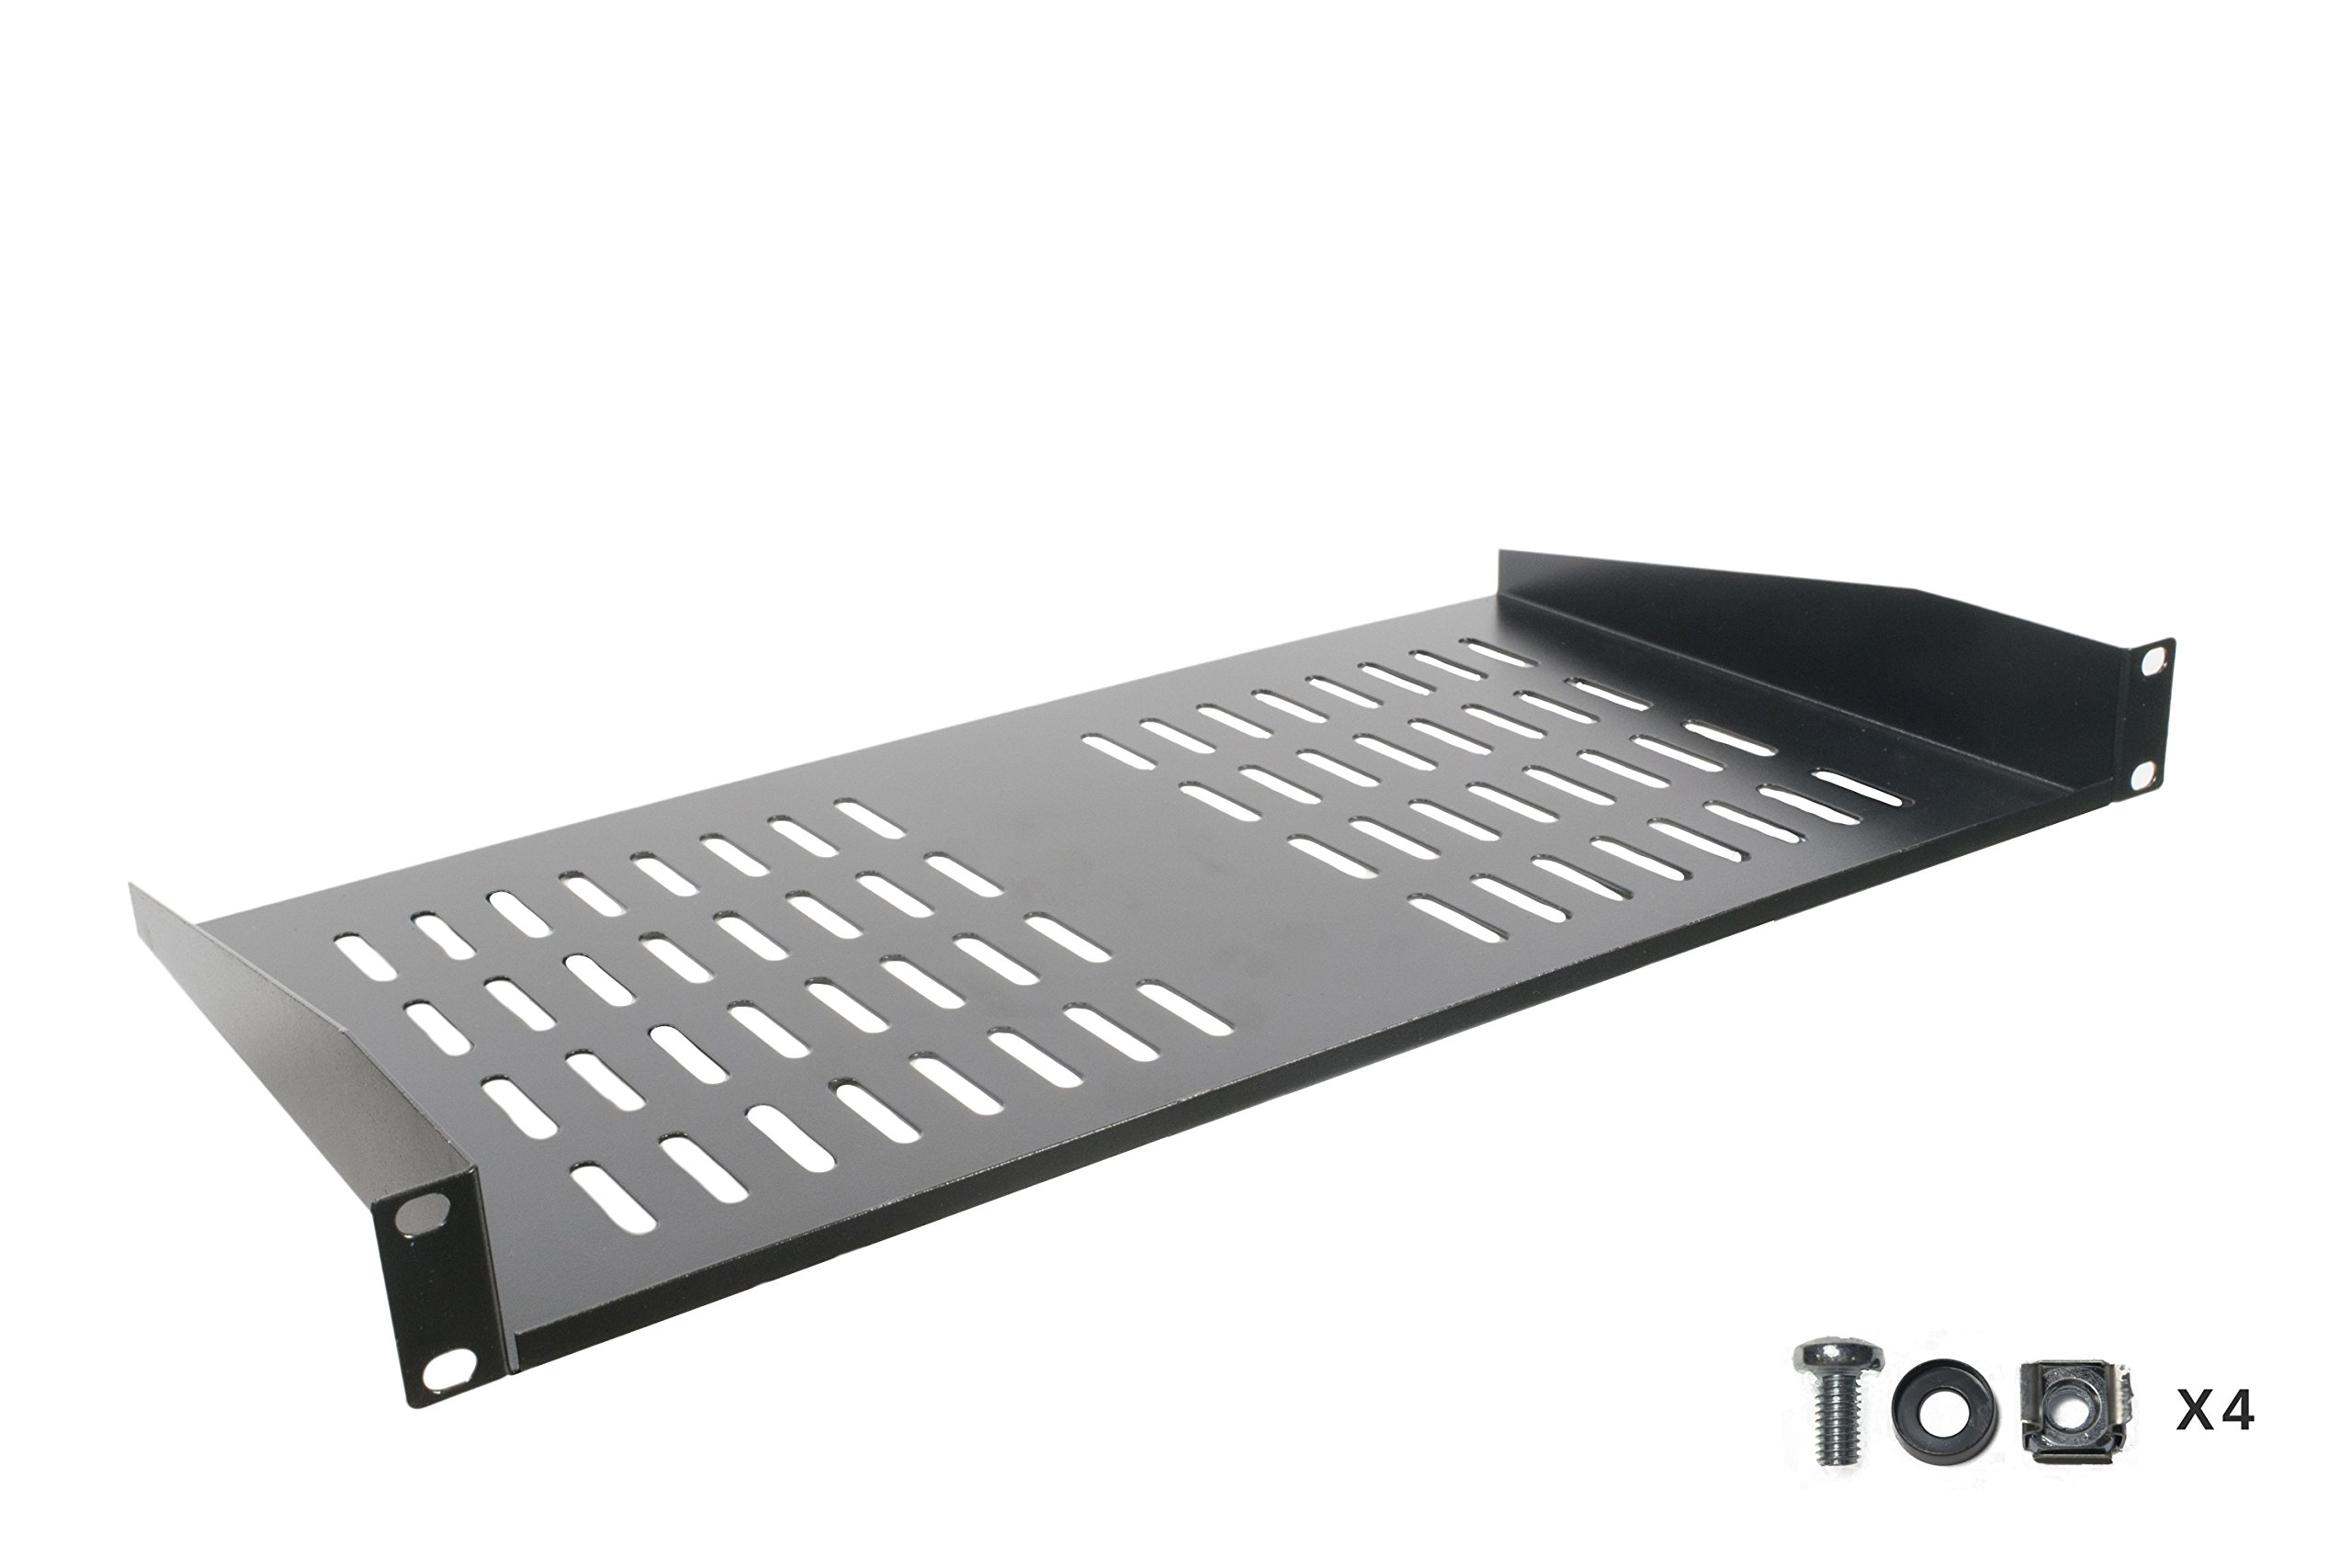 cantilever included vented inch depth rack mounting ht shelf pack product universal fi shelves w two cabinets server hi hardware cabinet